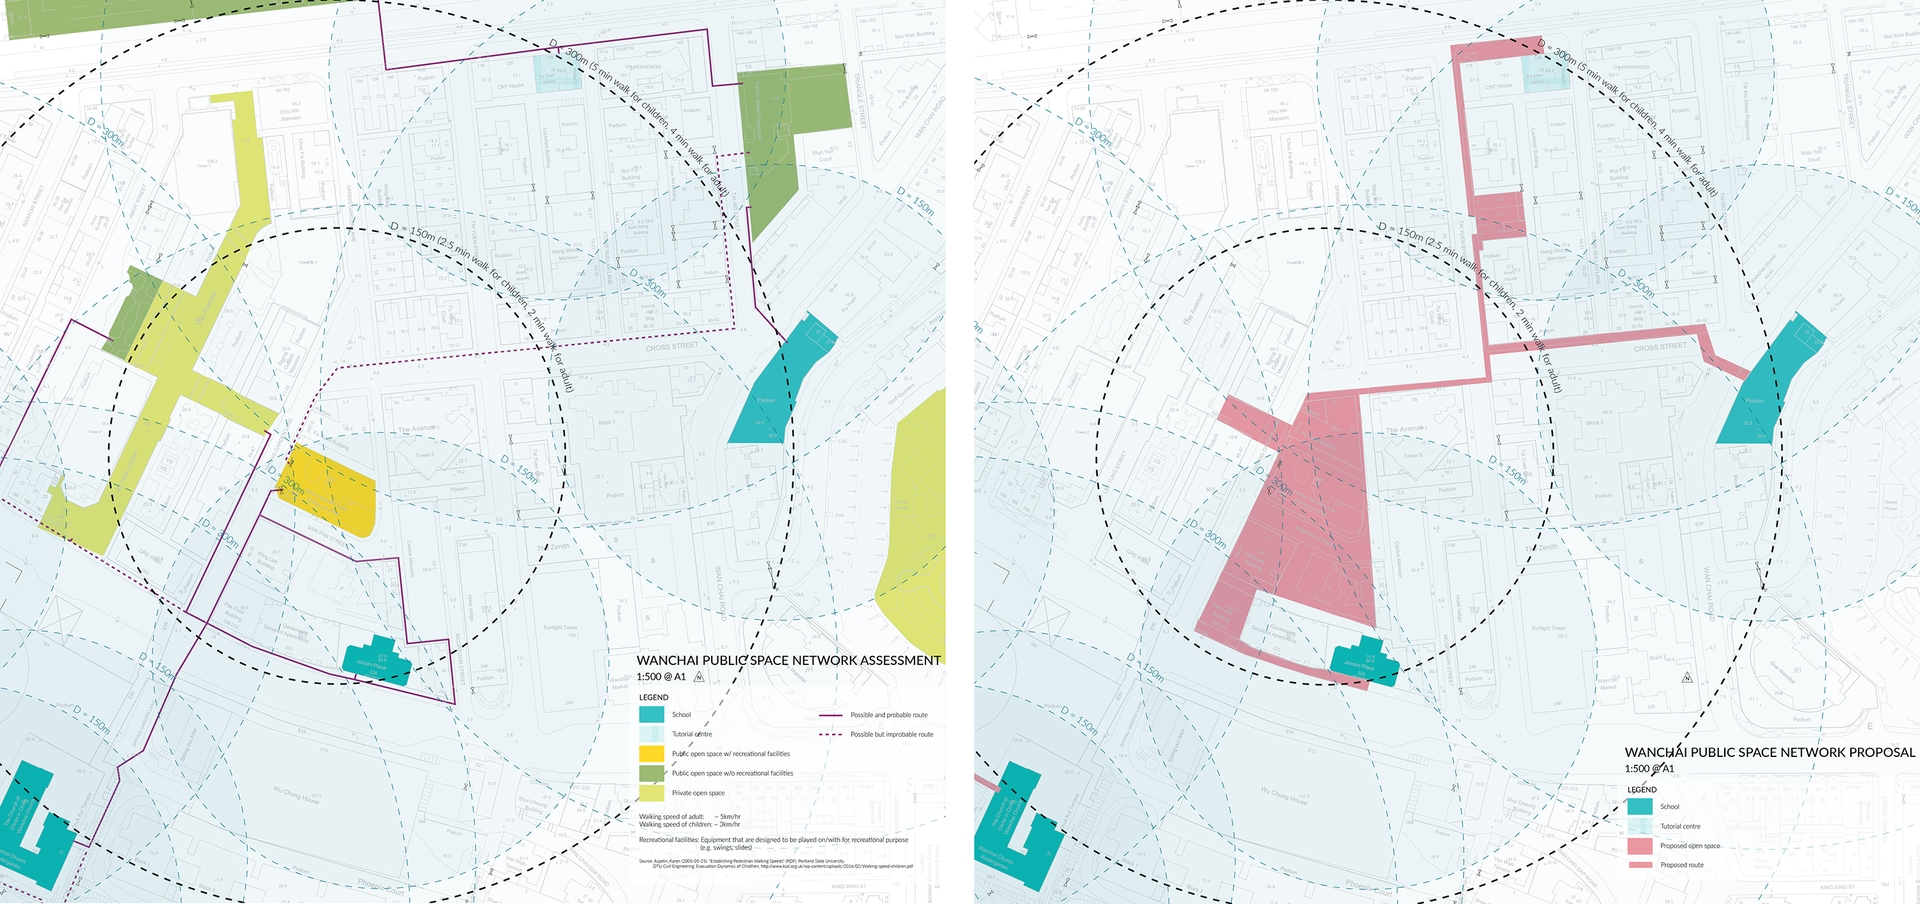 Enlarge Photo: Site Design and Public Space Network Masterplanning: Assessment & Proposal. By CHUI Kei Ching.